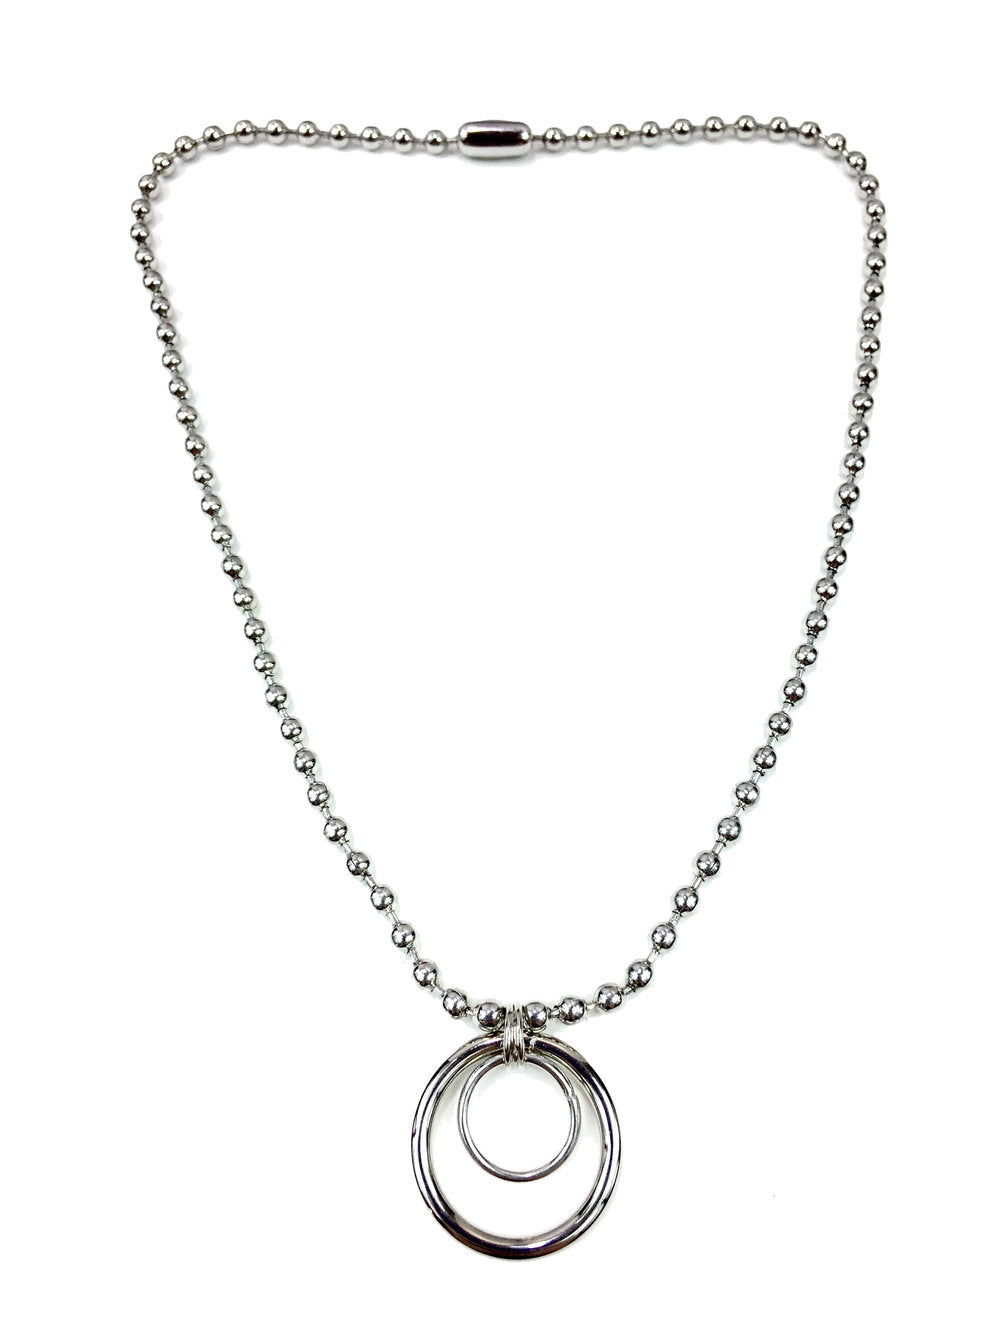 Sonti Ball Chain Necklace - Stinnys